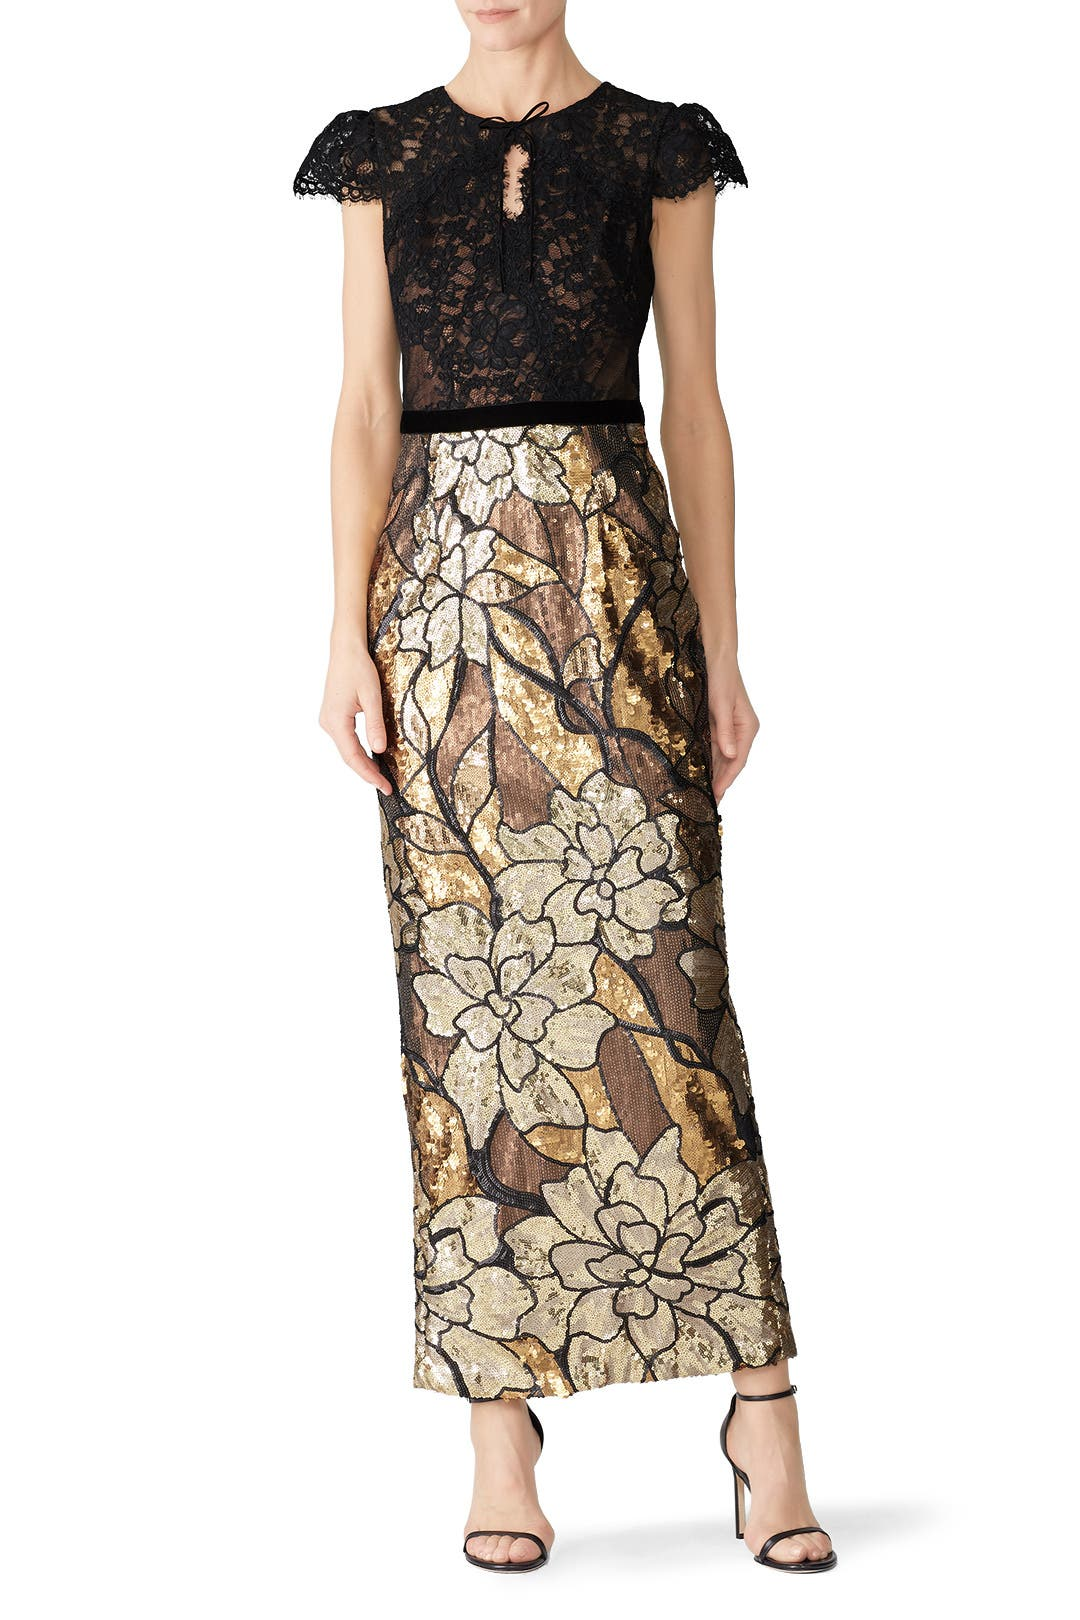 645fdbdbce33 Gold Artwork Sequin Gown by Marchesa Notte for  105 -  130